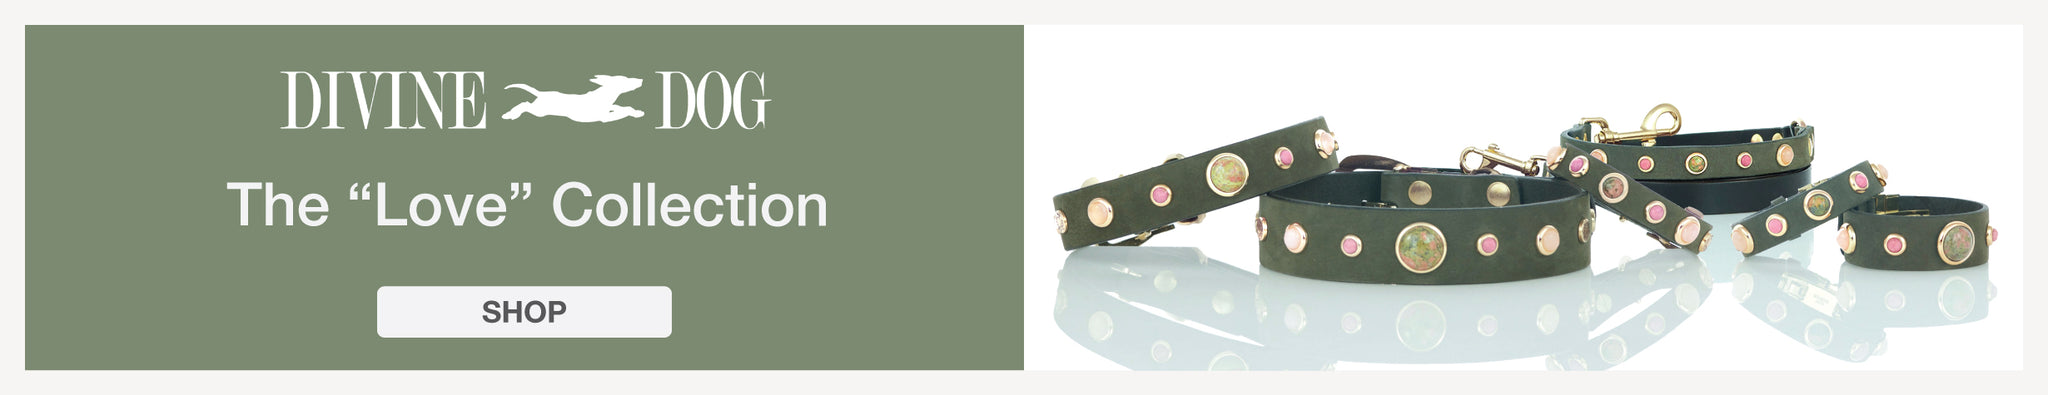 "The ""Love"" Collection of Leather Dog Collars with Gemstones"